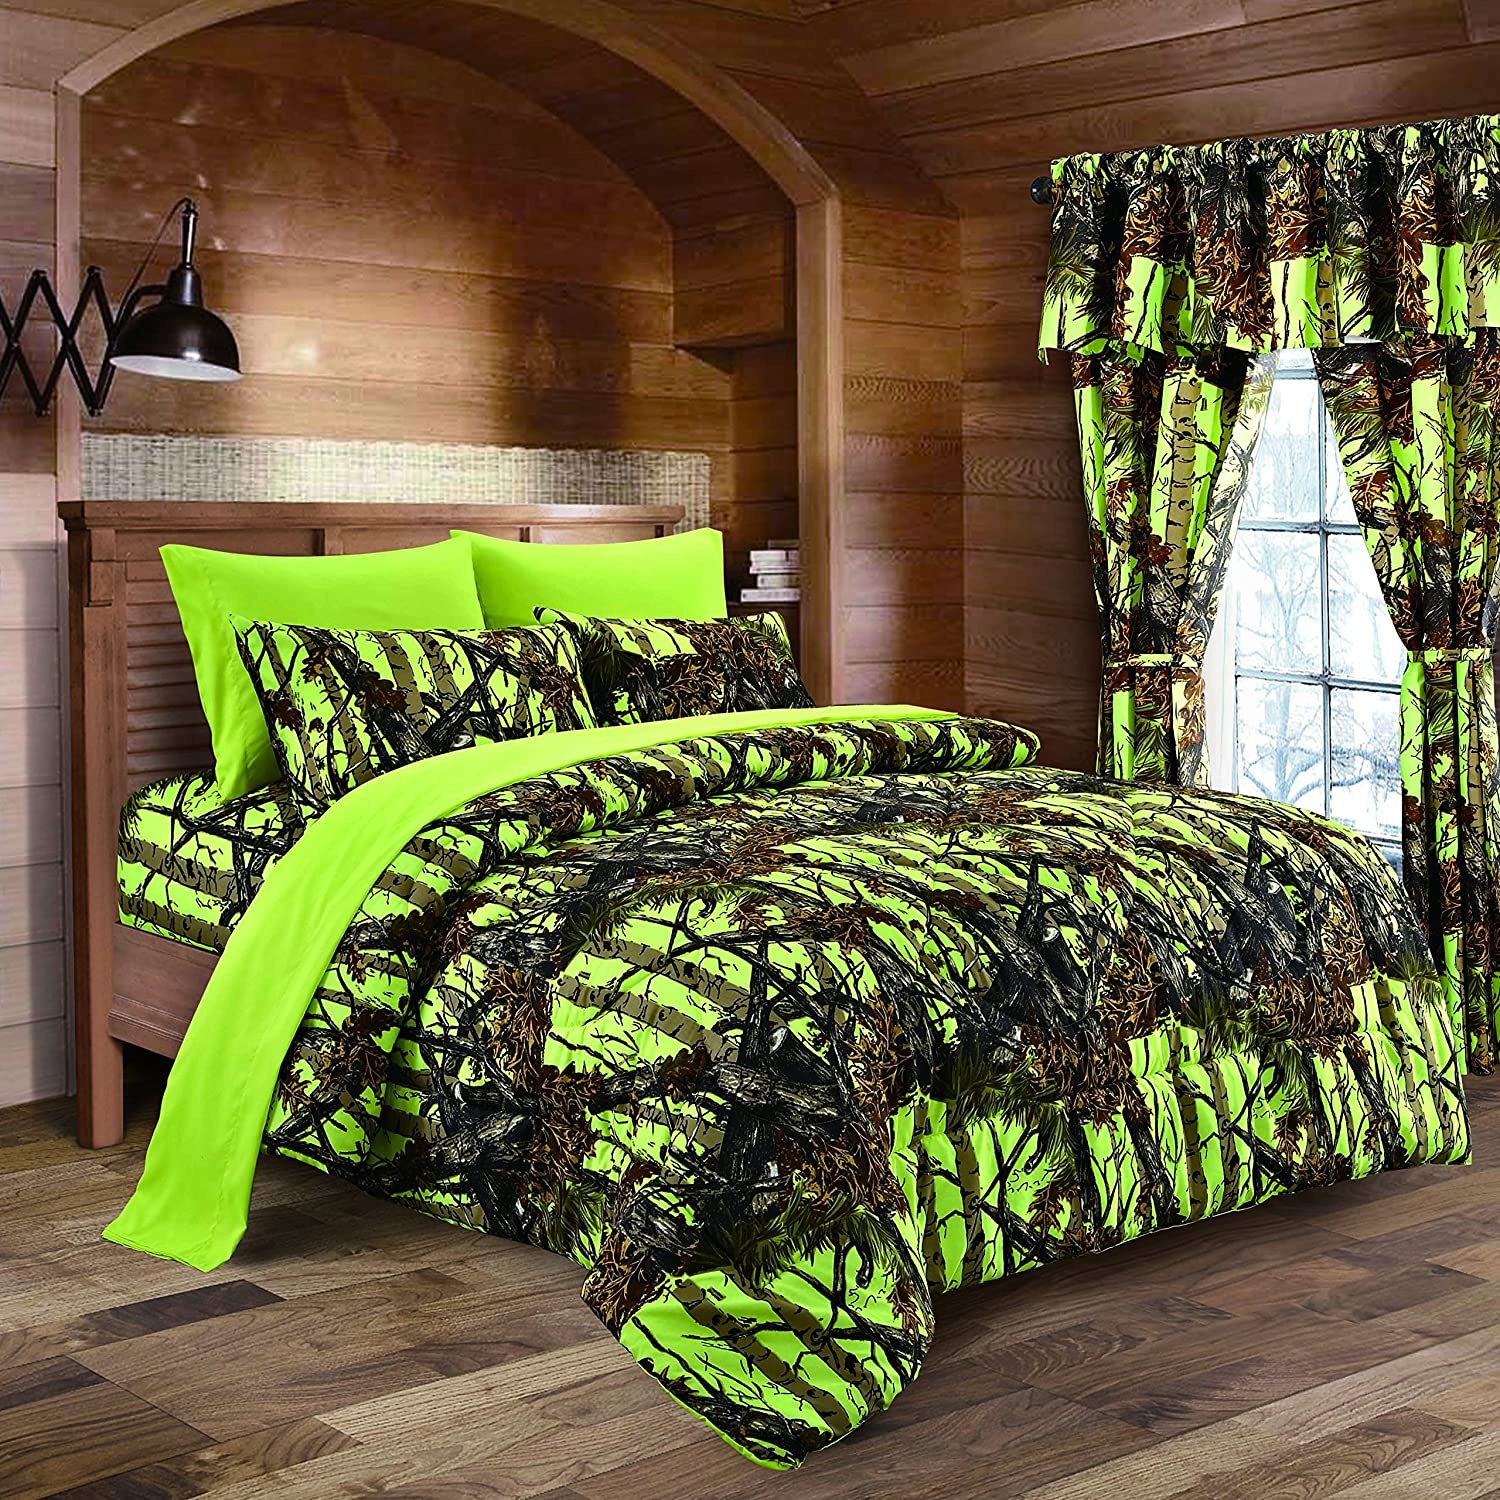 Lime Green Camouflage King 8pc Premium Luxury Comforter, Sheet, Pillowcases, and Bed Skirt Set by Regal Comfort Camo Bedding Set